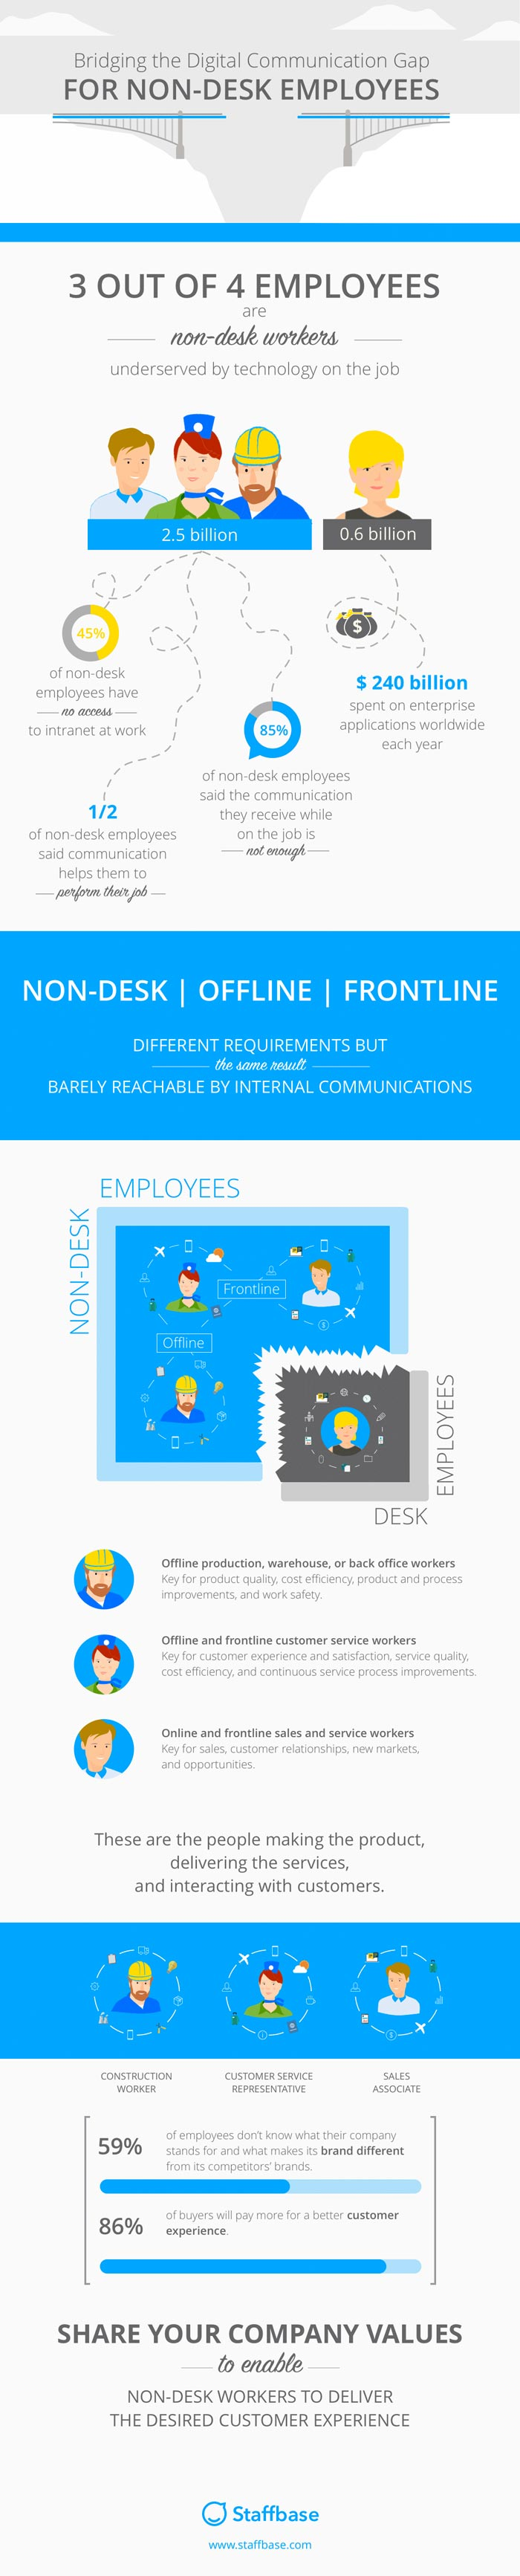 Internal Communications for Non-Desk, Frontline and Offline Employees